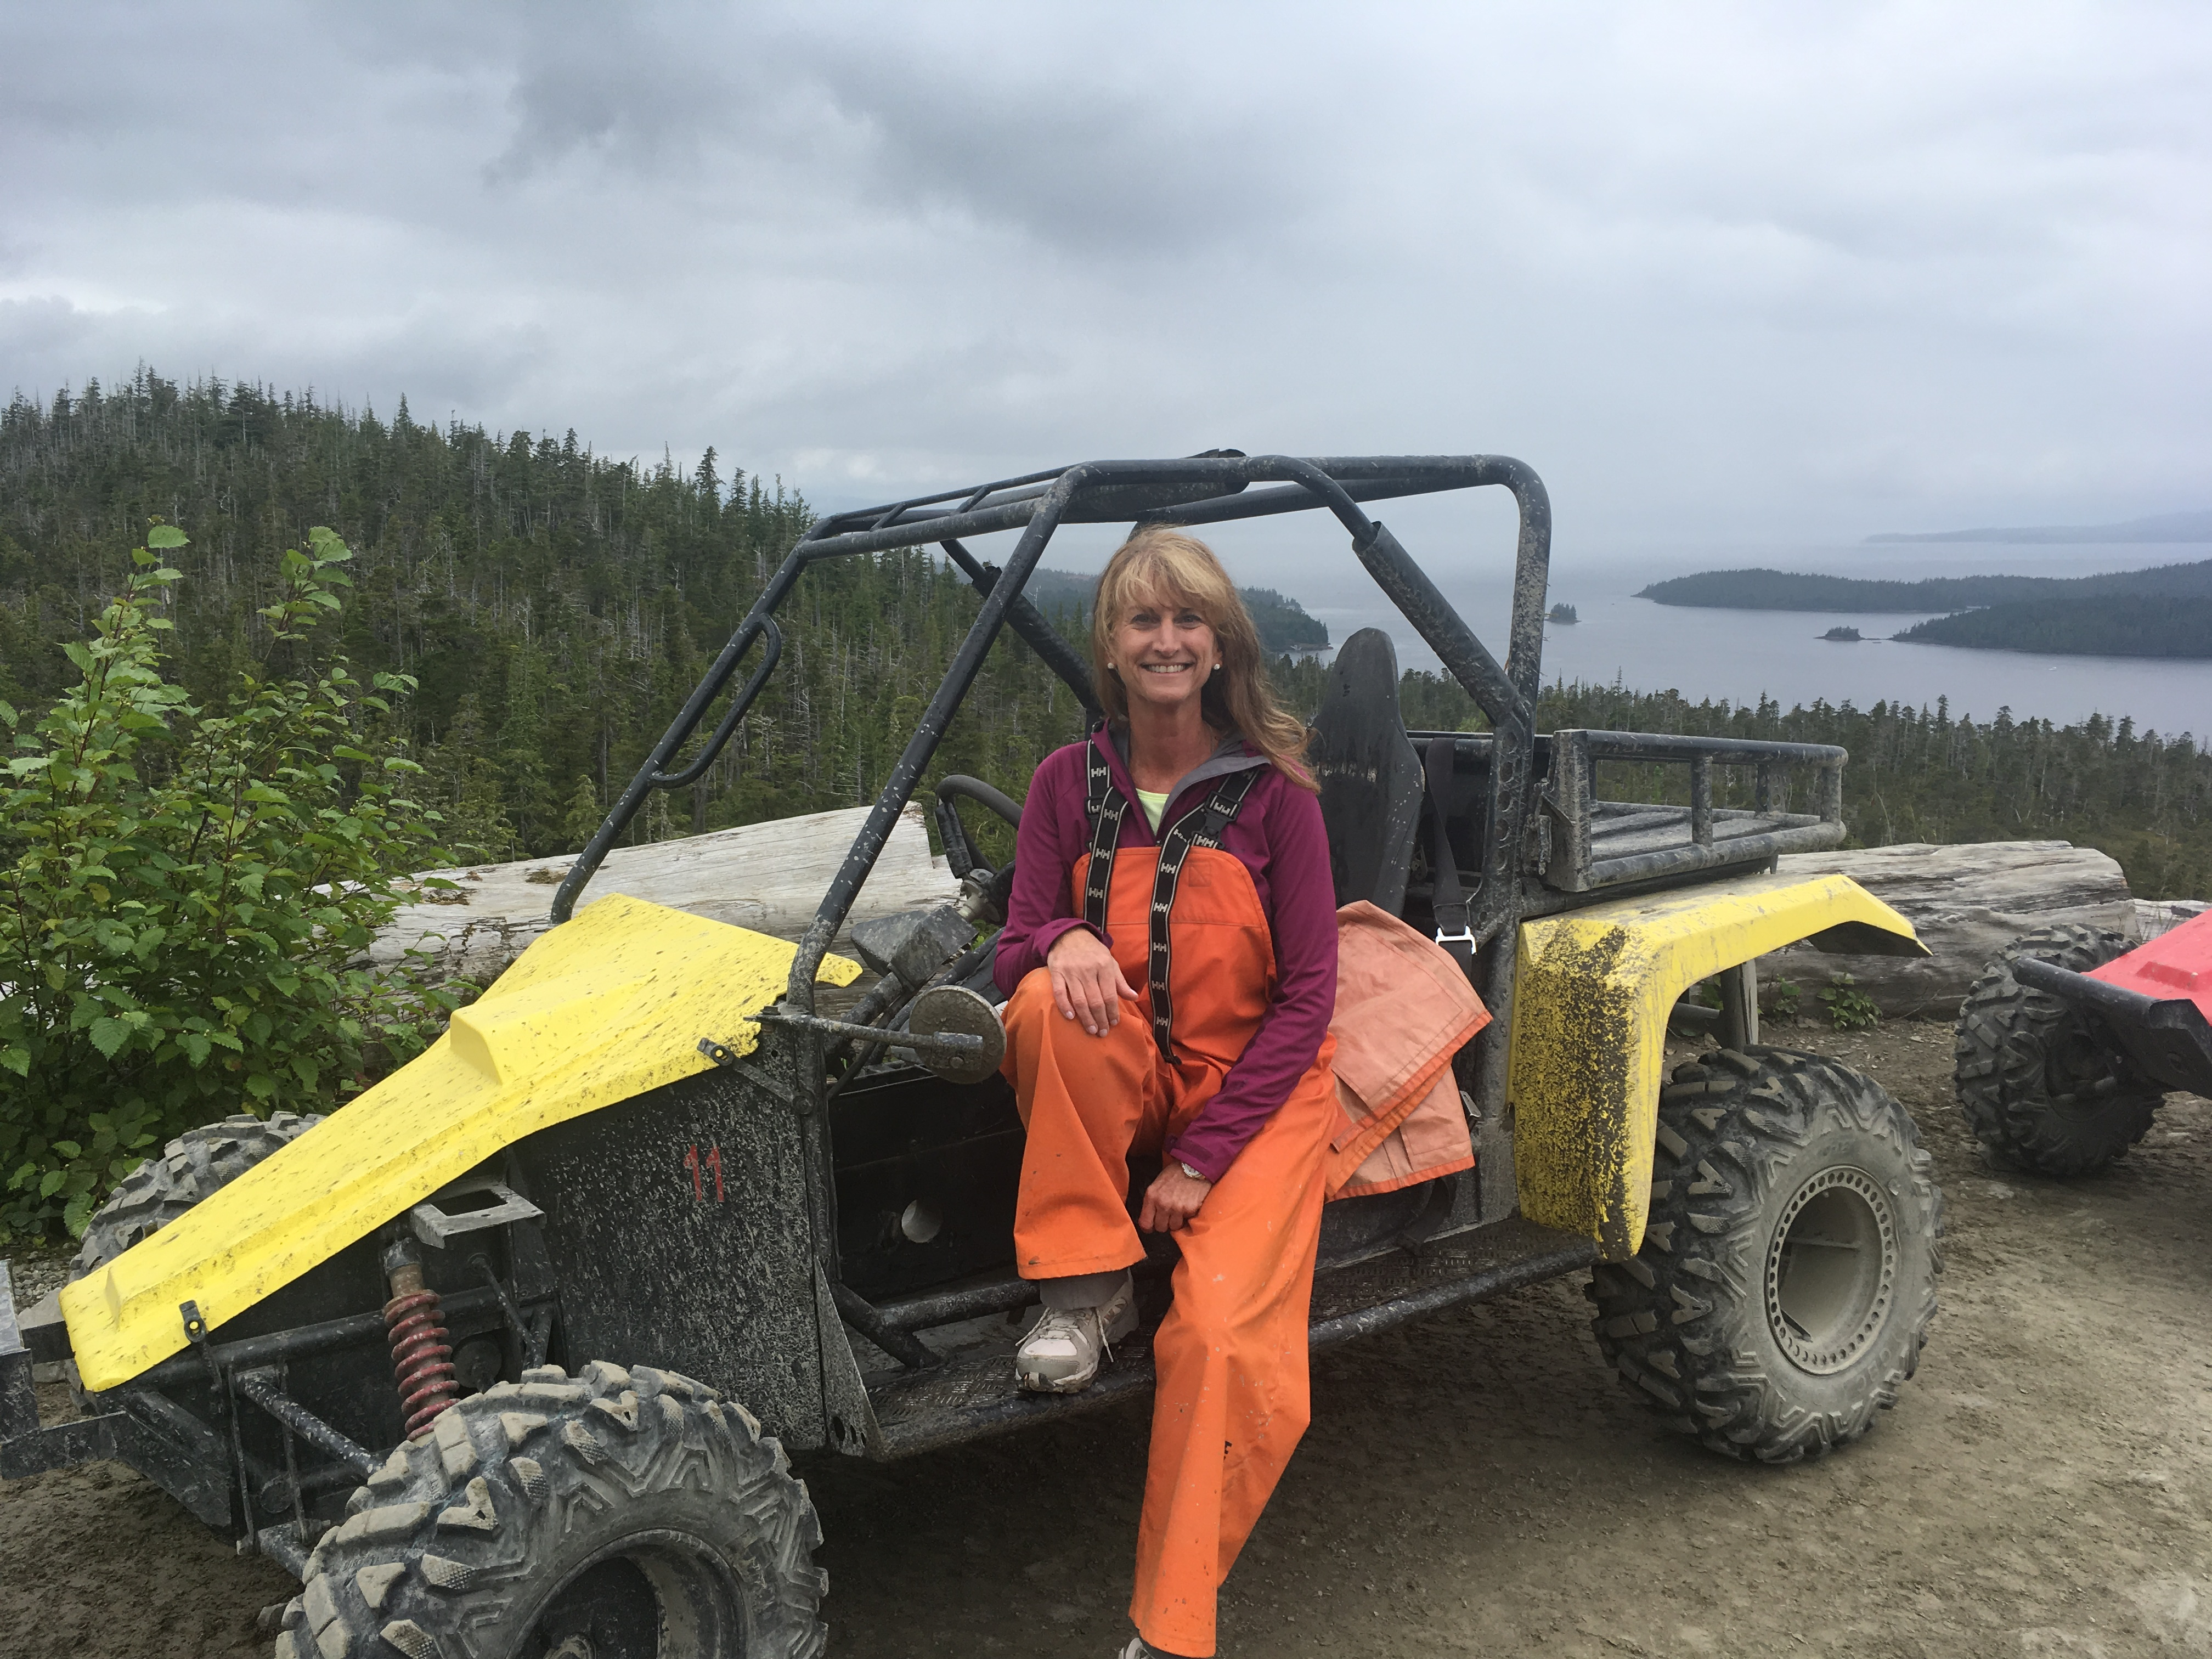 Photo of Debbie Wircenske sitting on a yellow All Terrain Vehicle (ATV) on a mountain top